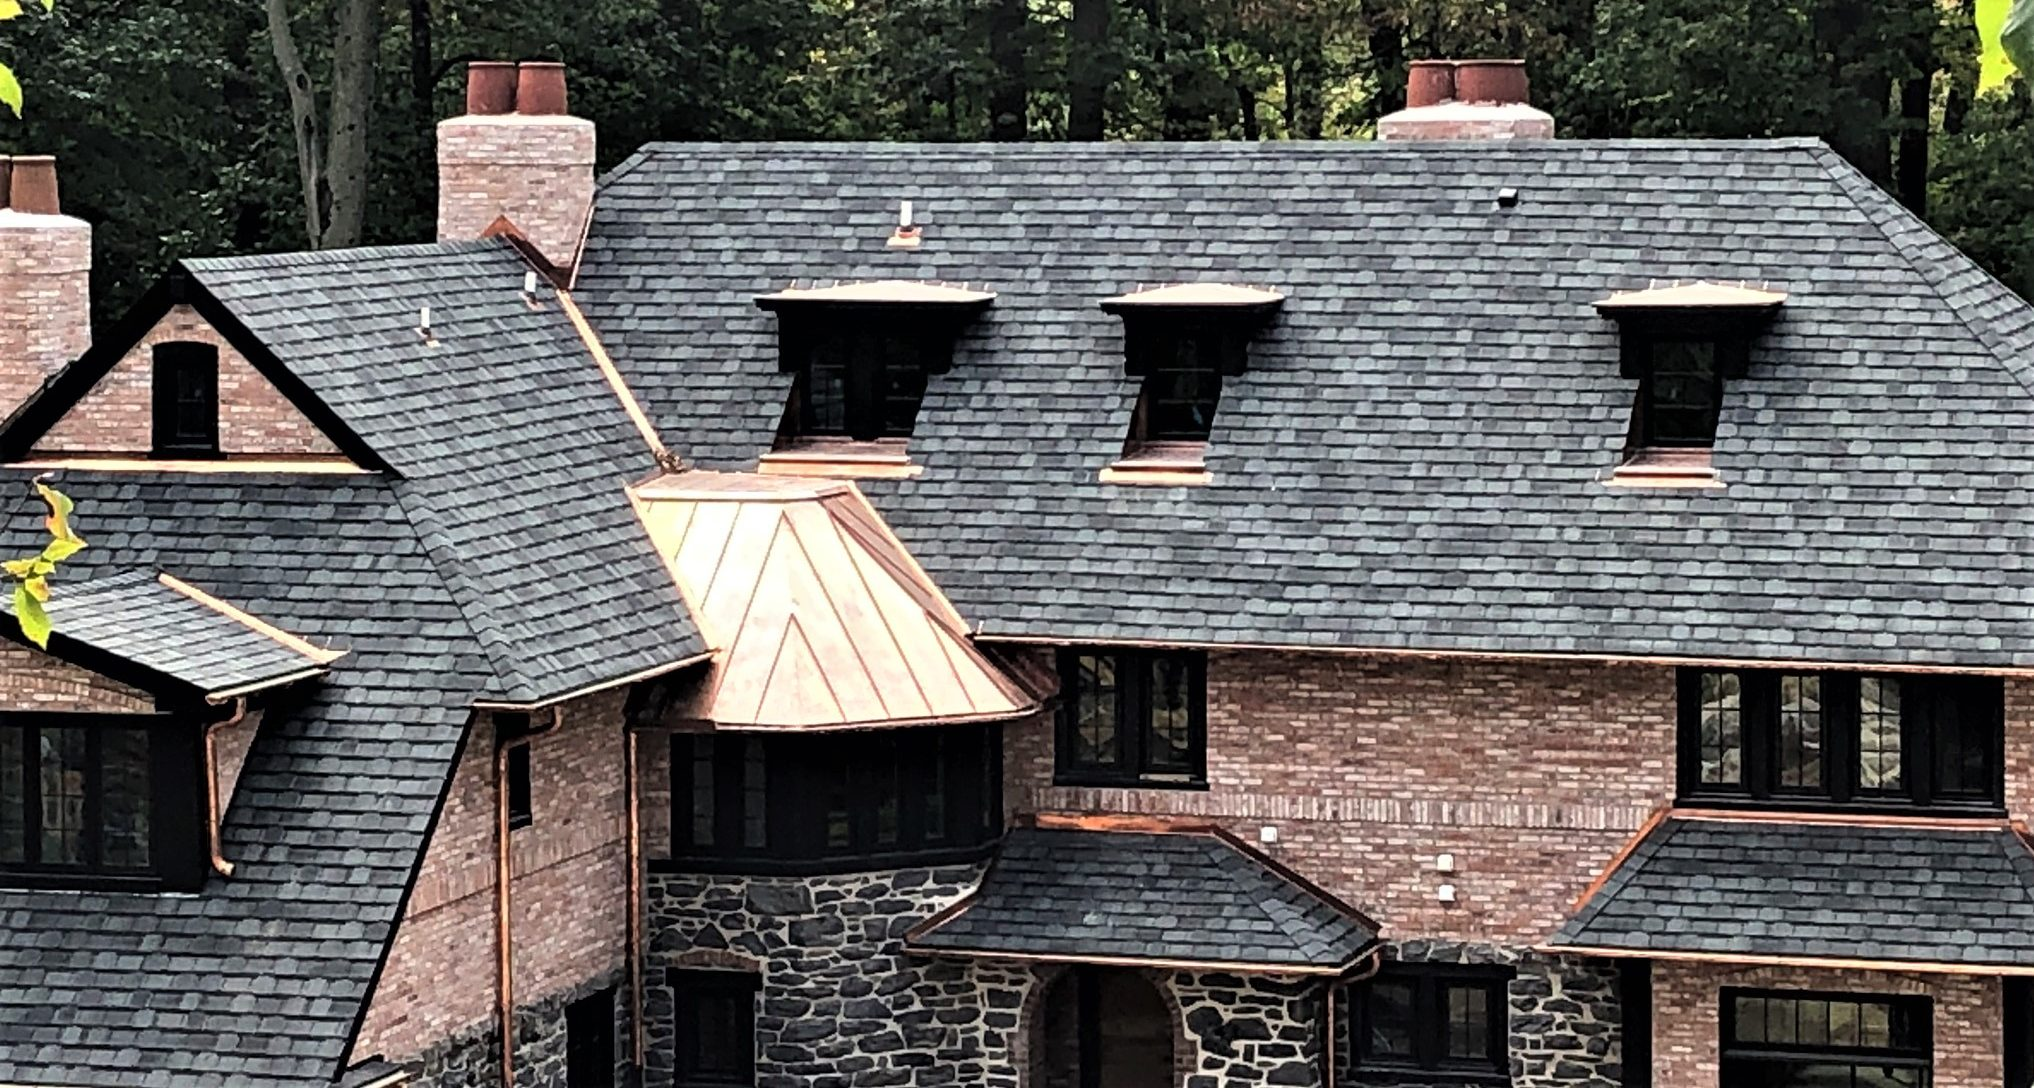 A roof made of shingles and copper